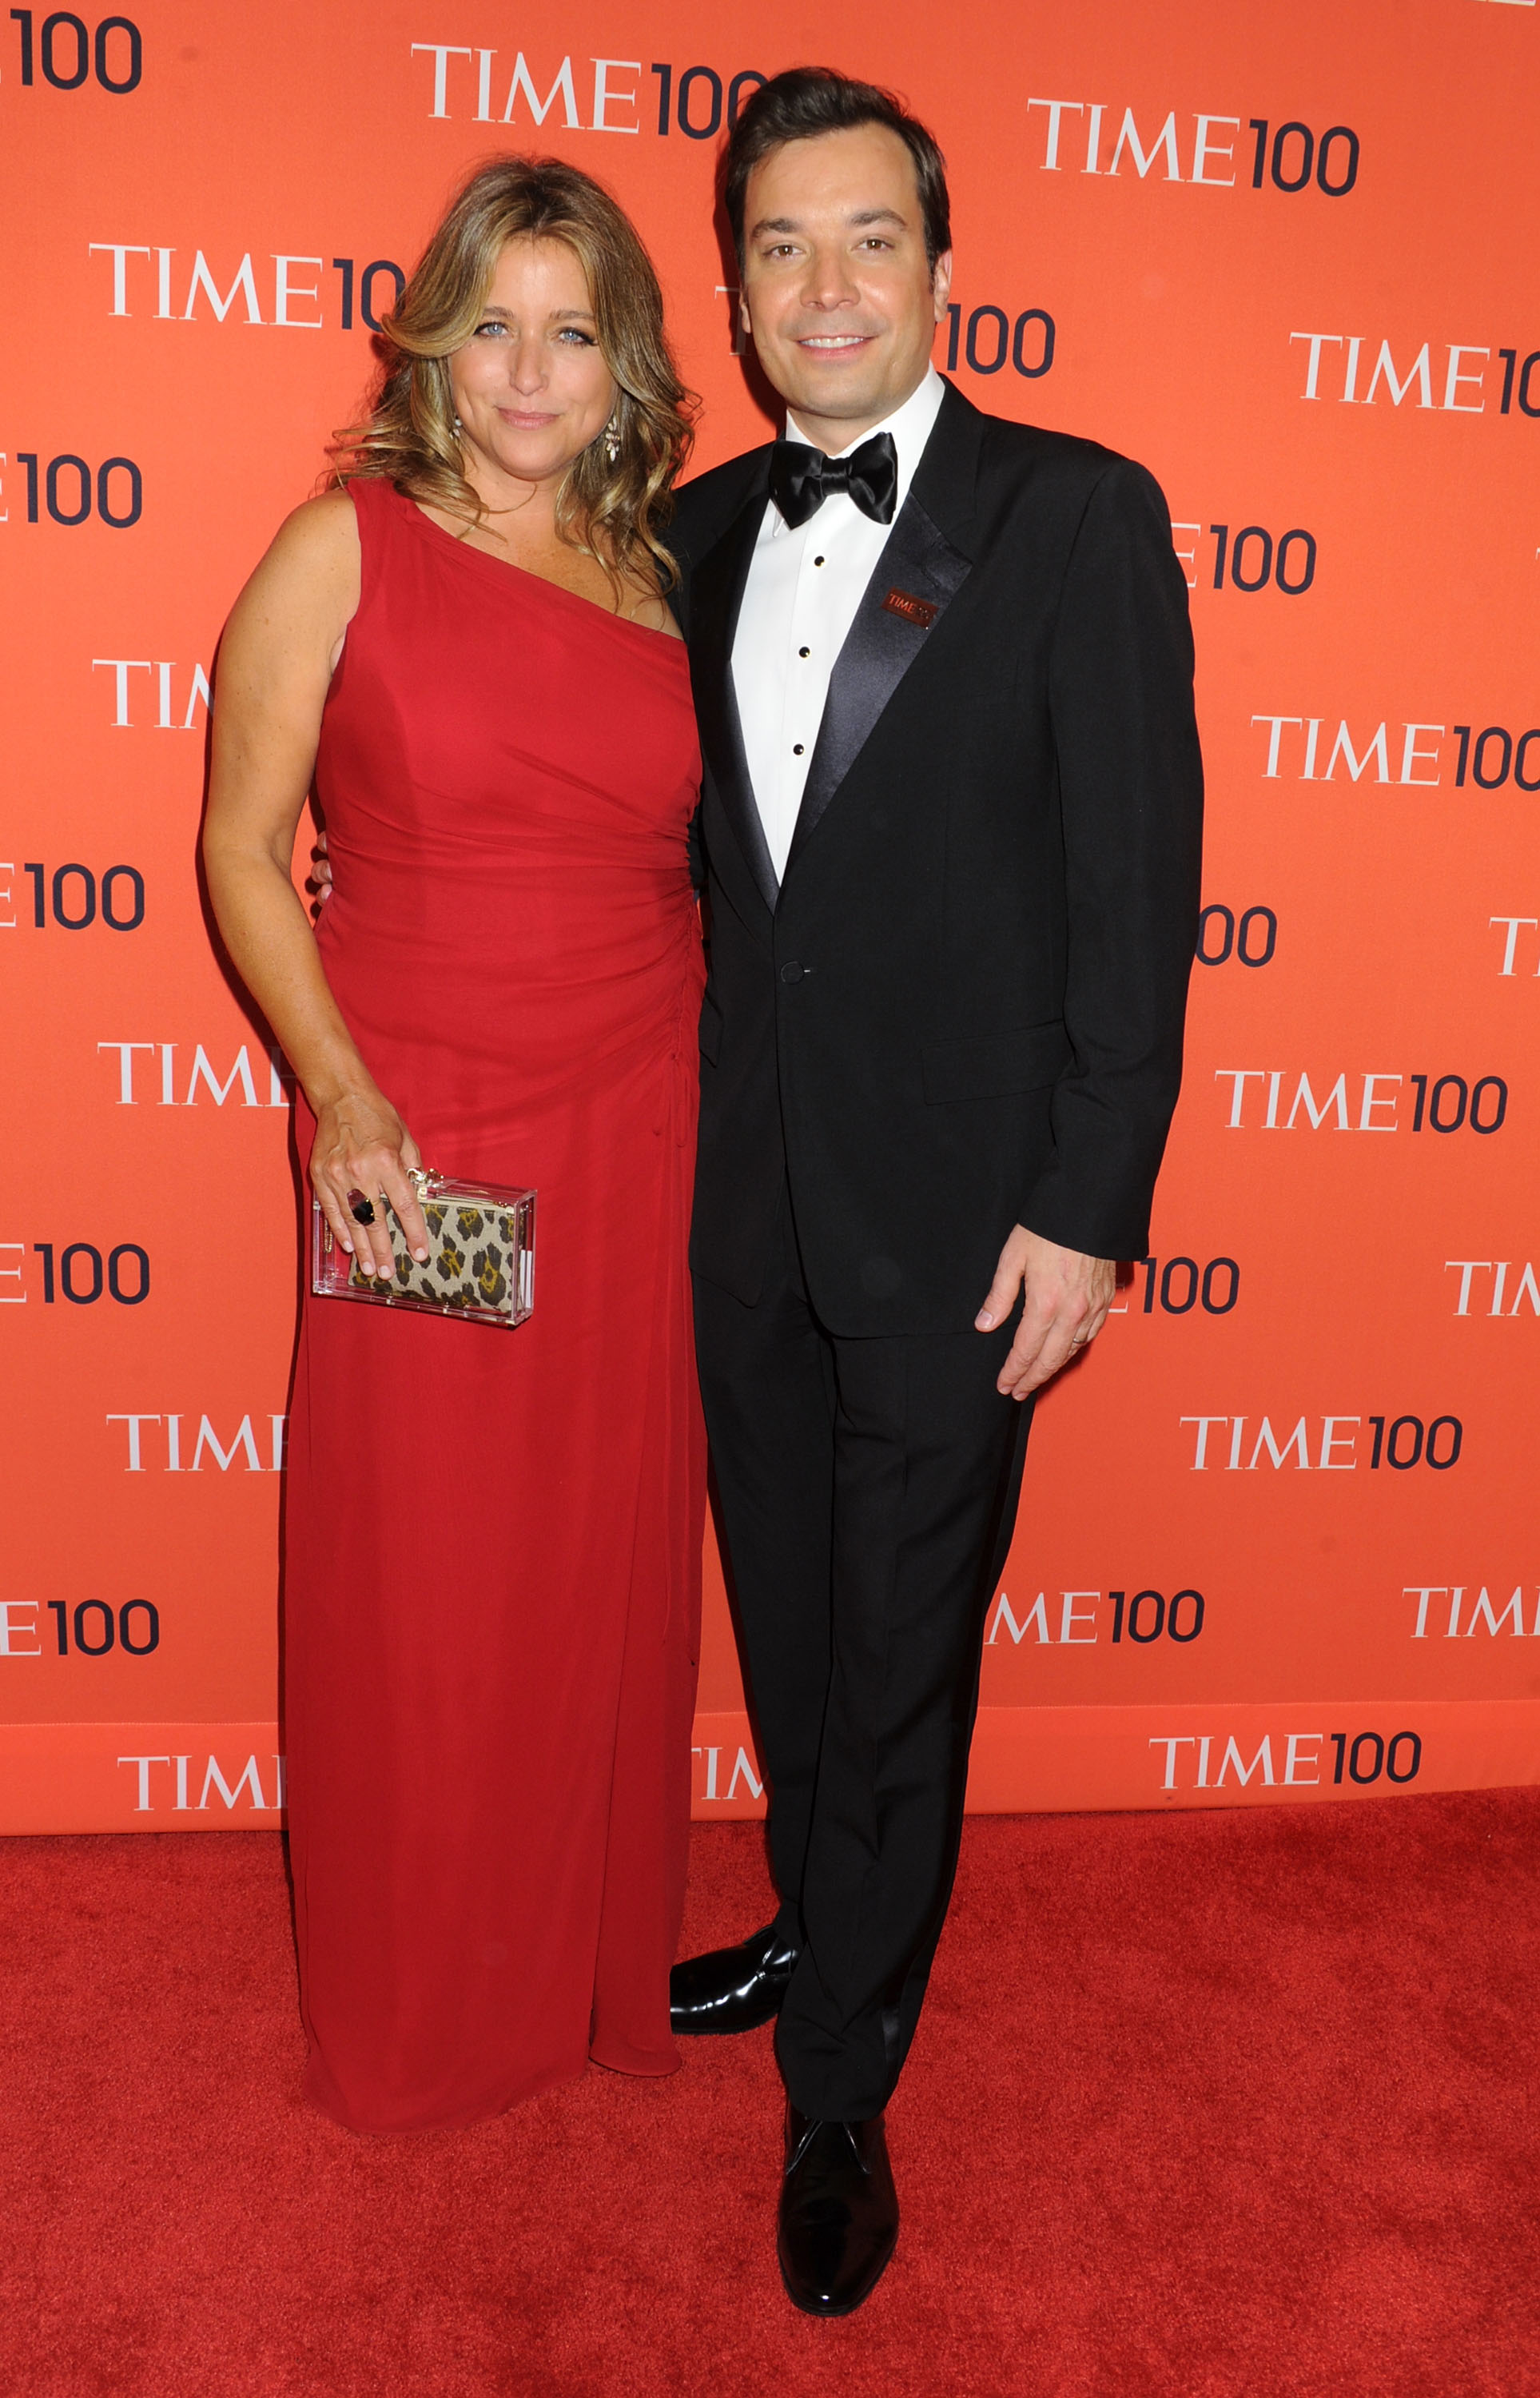 TV host Jimmy Fallon and Nancy Juvonen attend the 2013 Time 100 Gala at Frederick P. Rose Hall, Jazz at Lincoln Center on April 23, 2013 in New York City.